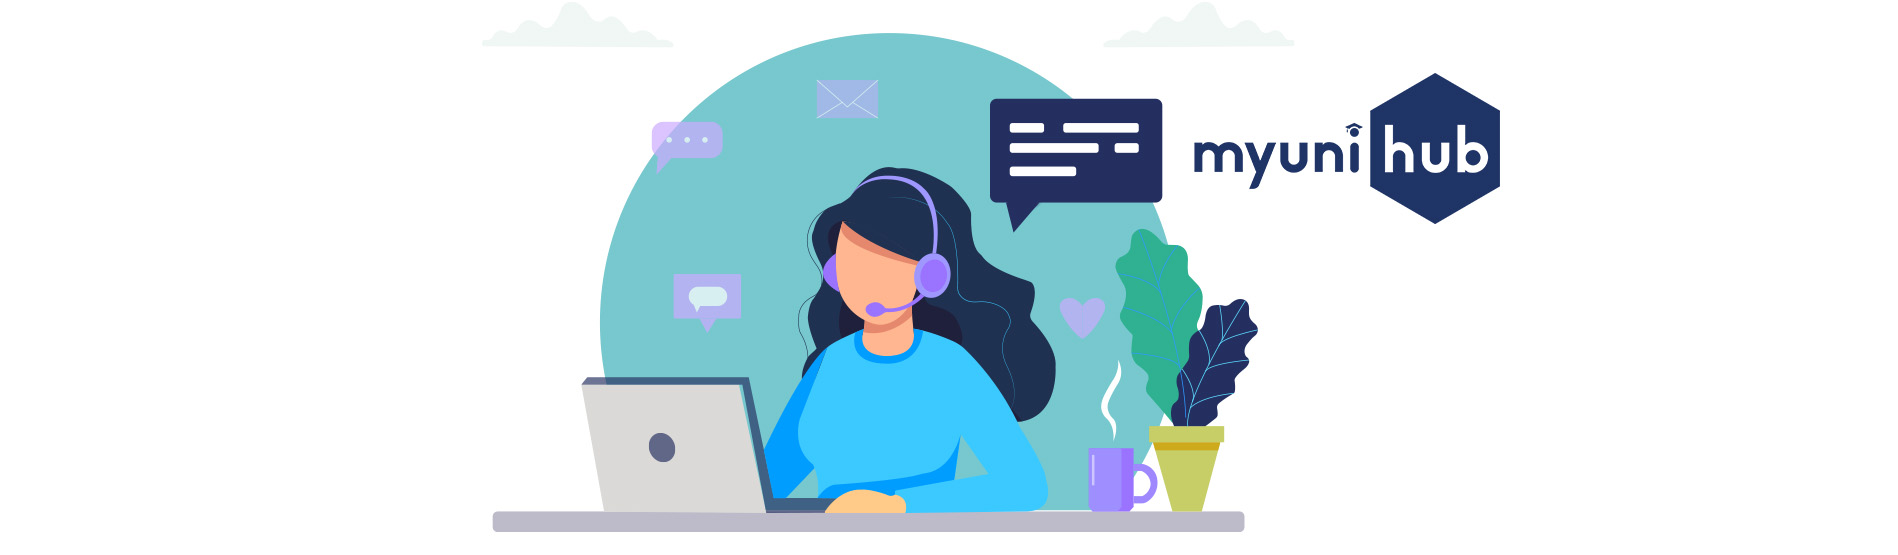 Illustration of a woman in a call centre